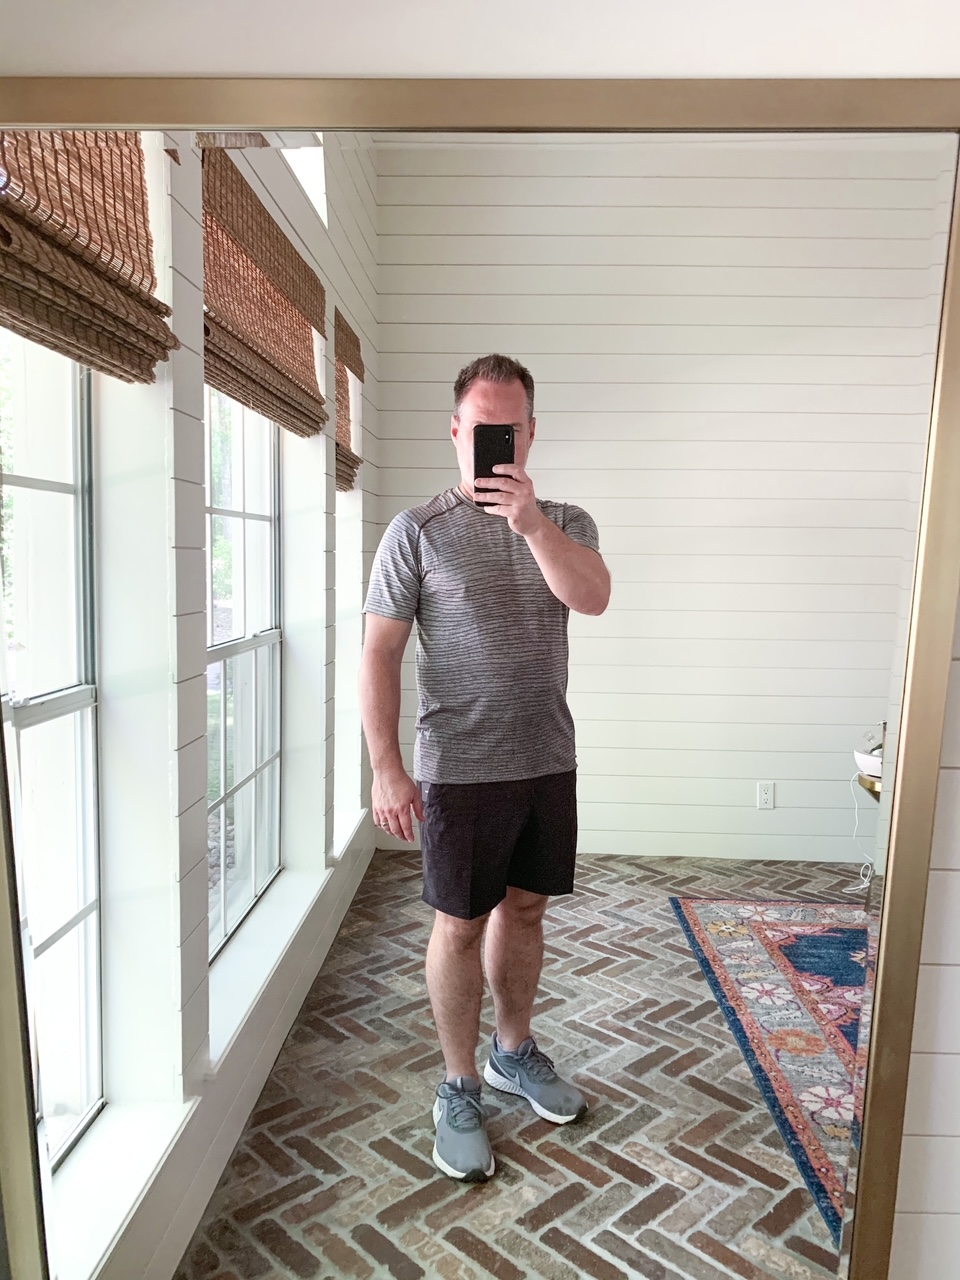 Men's Workout Gear by popular Houston fashion blog, The House of Fancy: image of a man wearing a Lululemon stripe shirt, Lululemon shorts and grey athletic shoes.